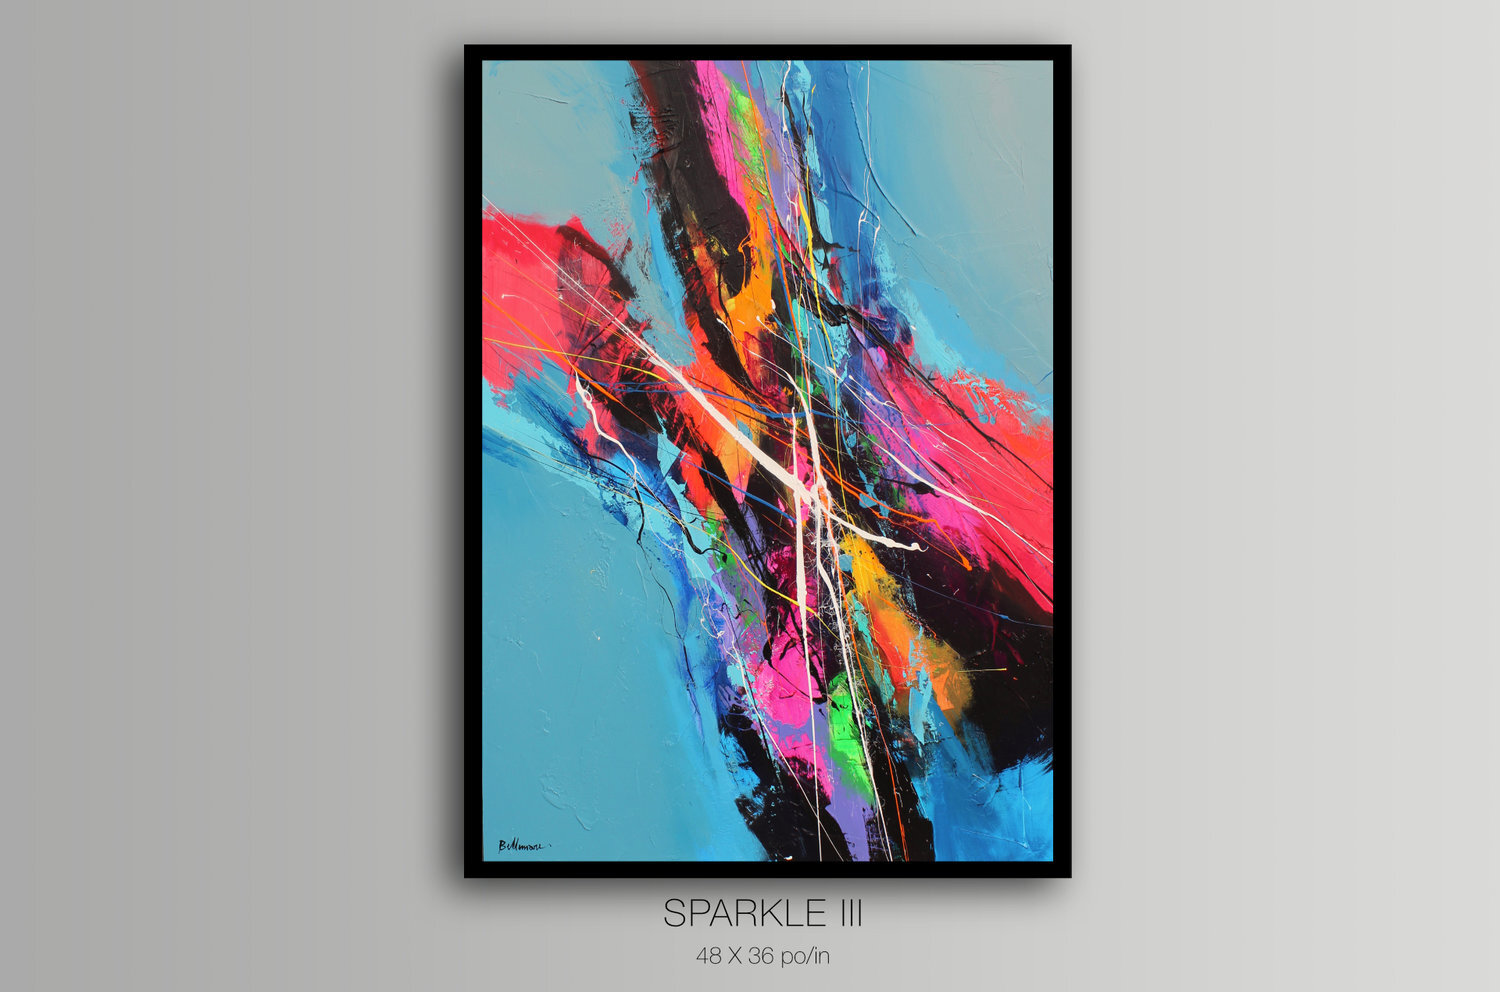 Sparkle III - Featured